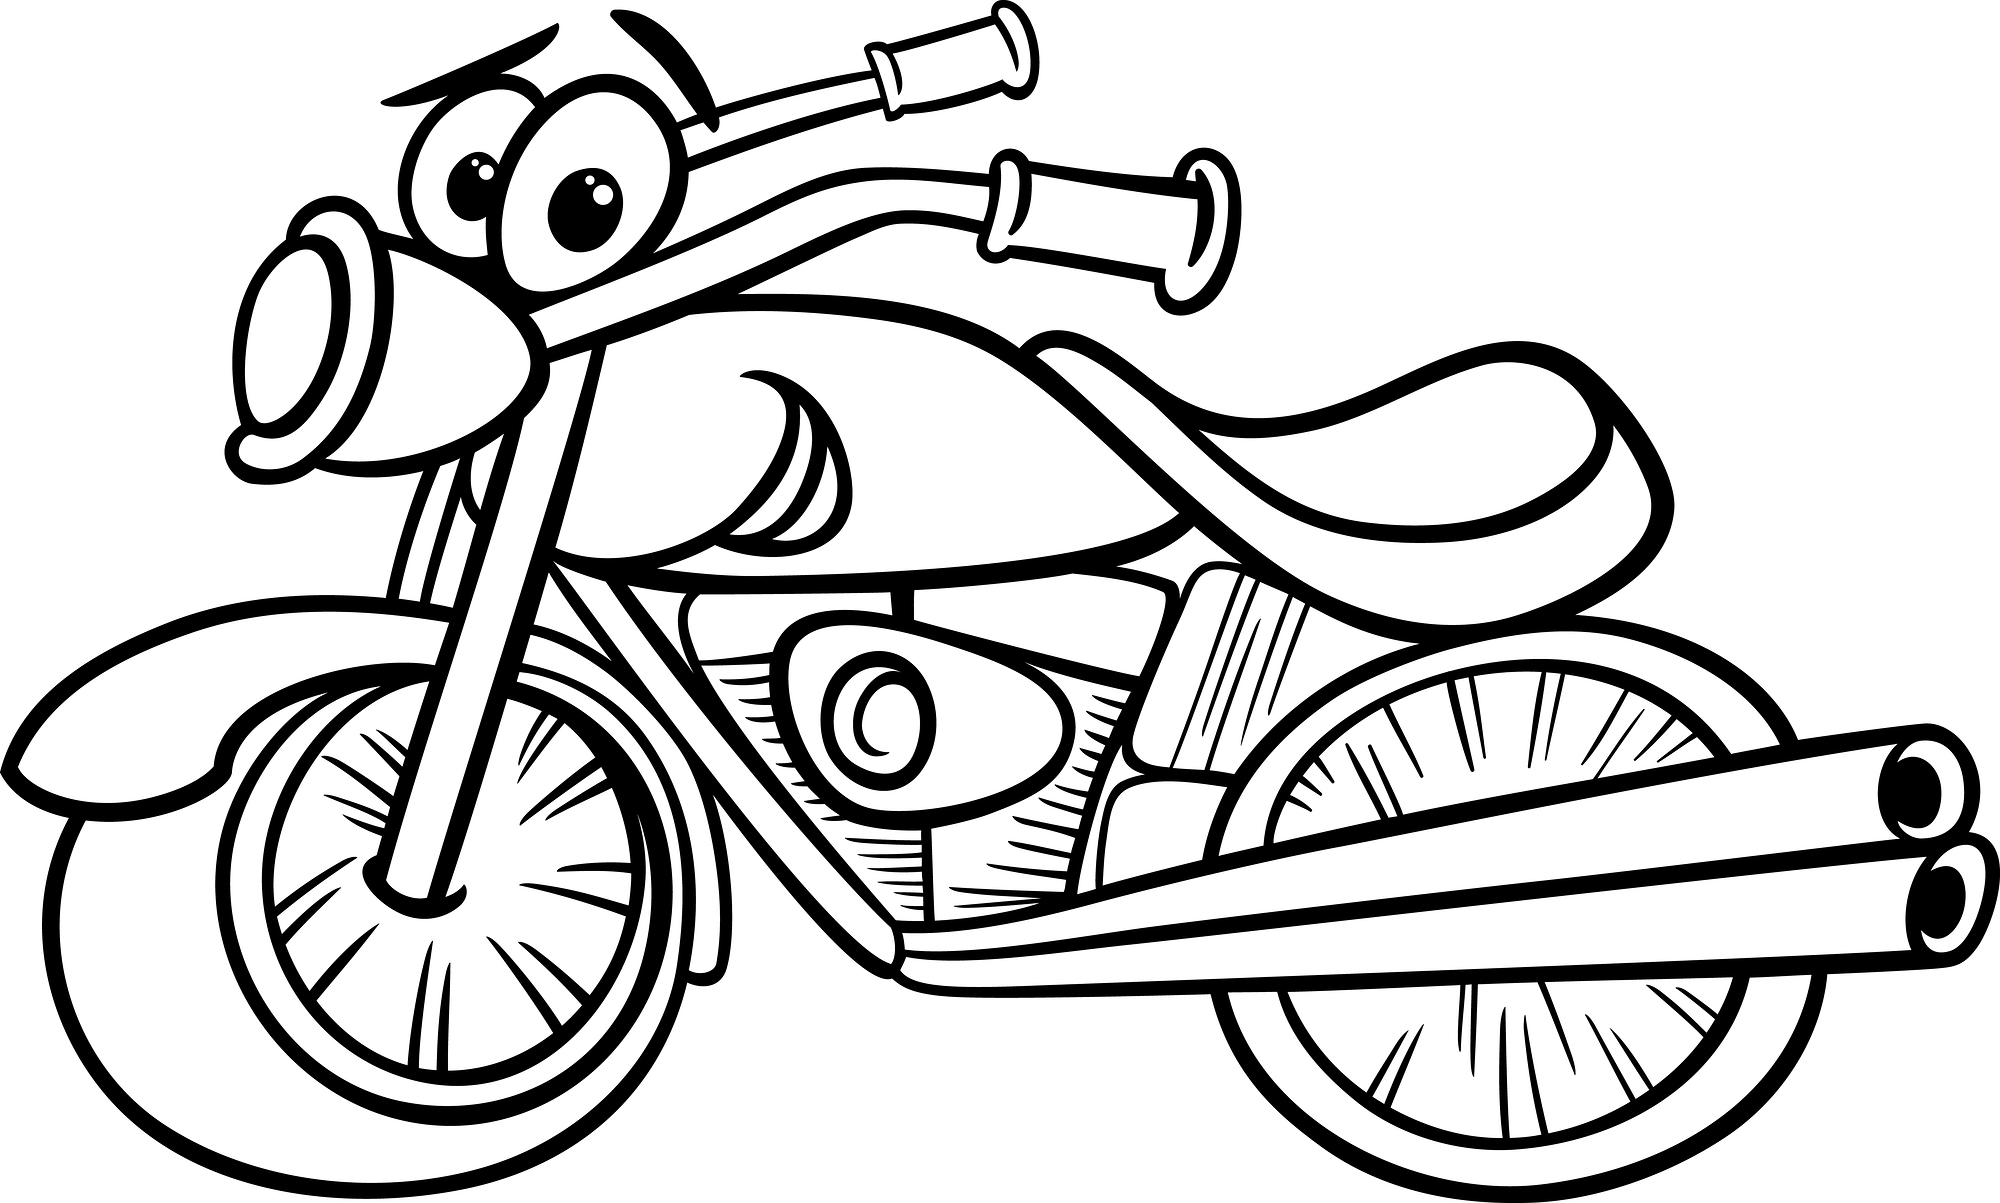 bike coloring pages road trip ideas for kids travel snacks games my life coloring bike pages